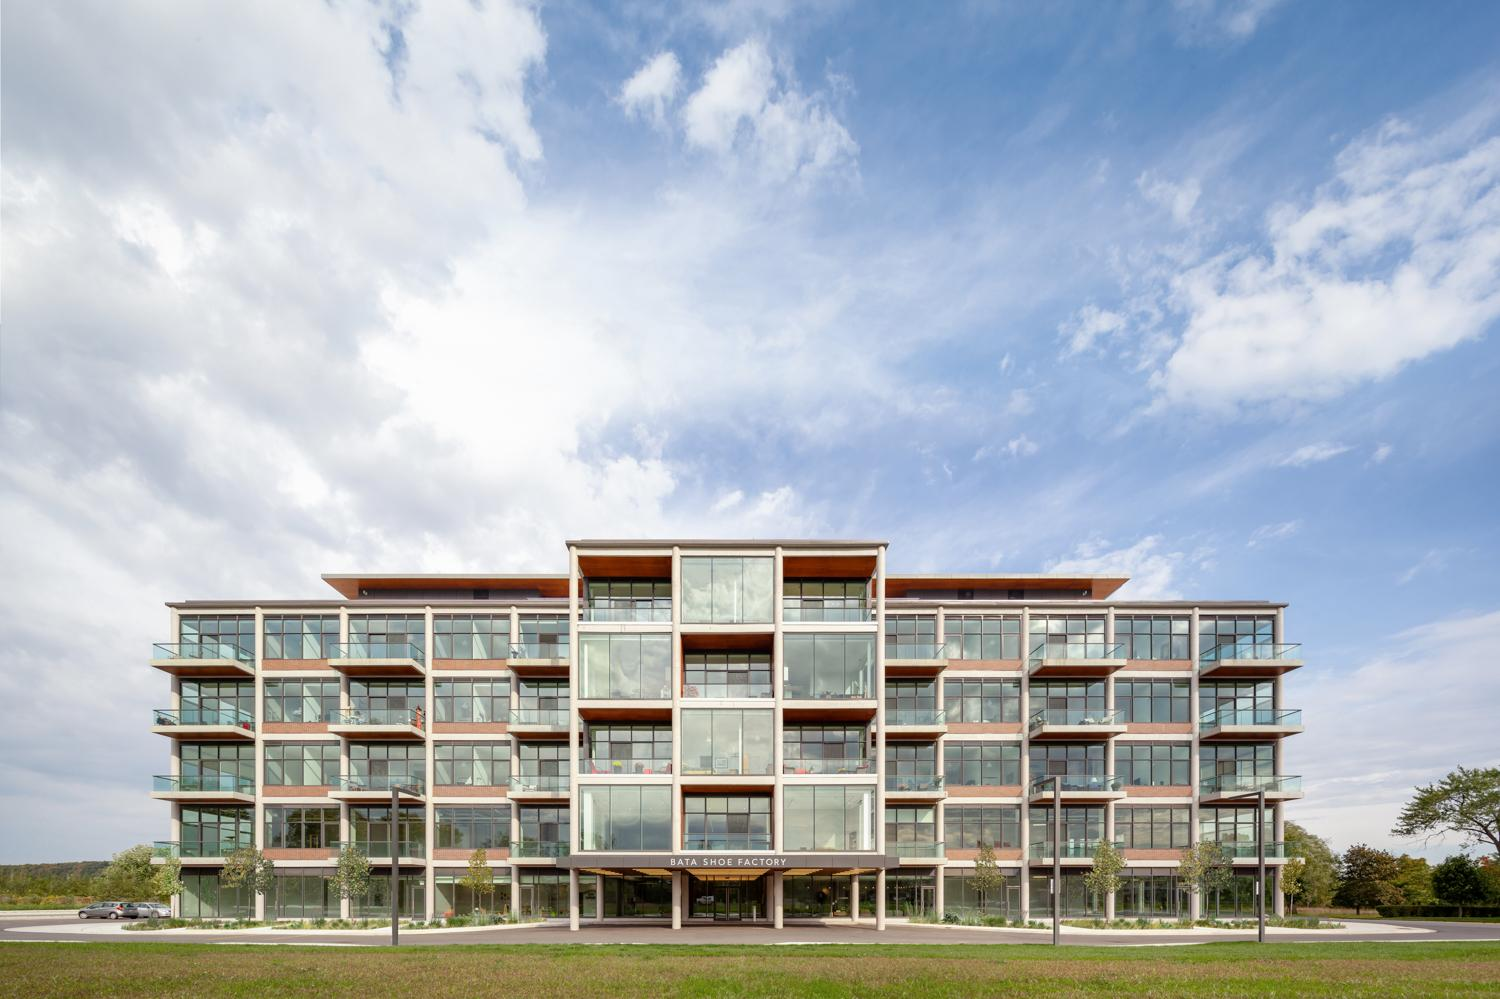 clouds and blue sky and green grass around the converted Bata Shoe Factory residential condominium building, which retains its post modern factory bones